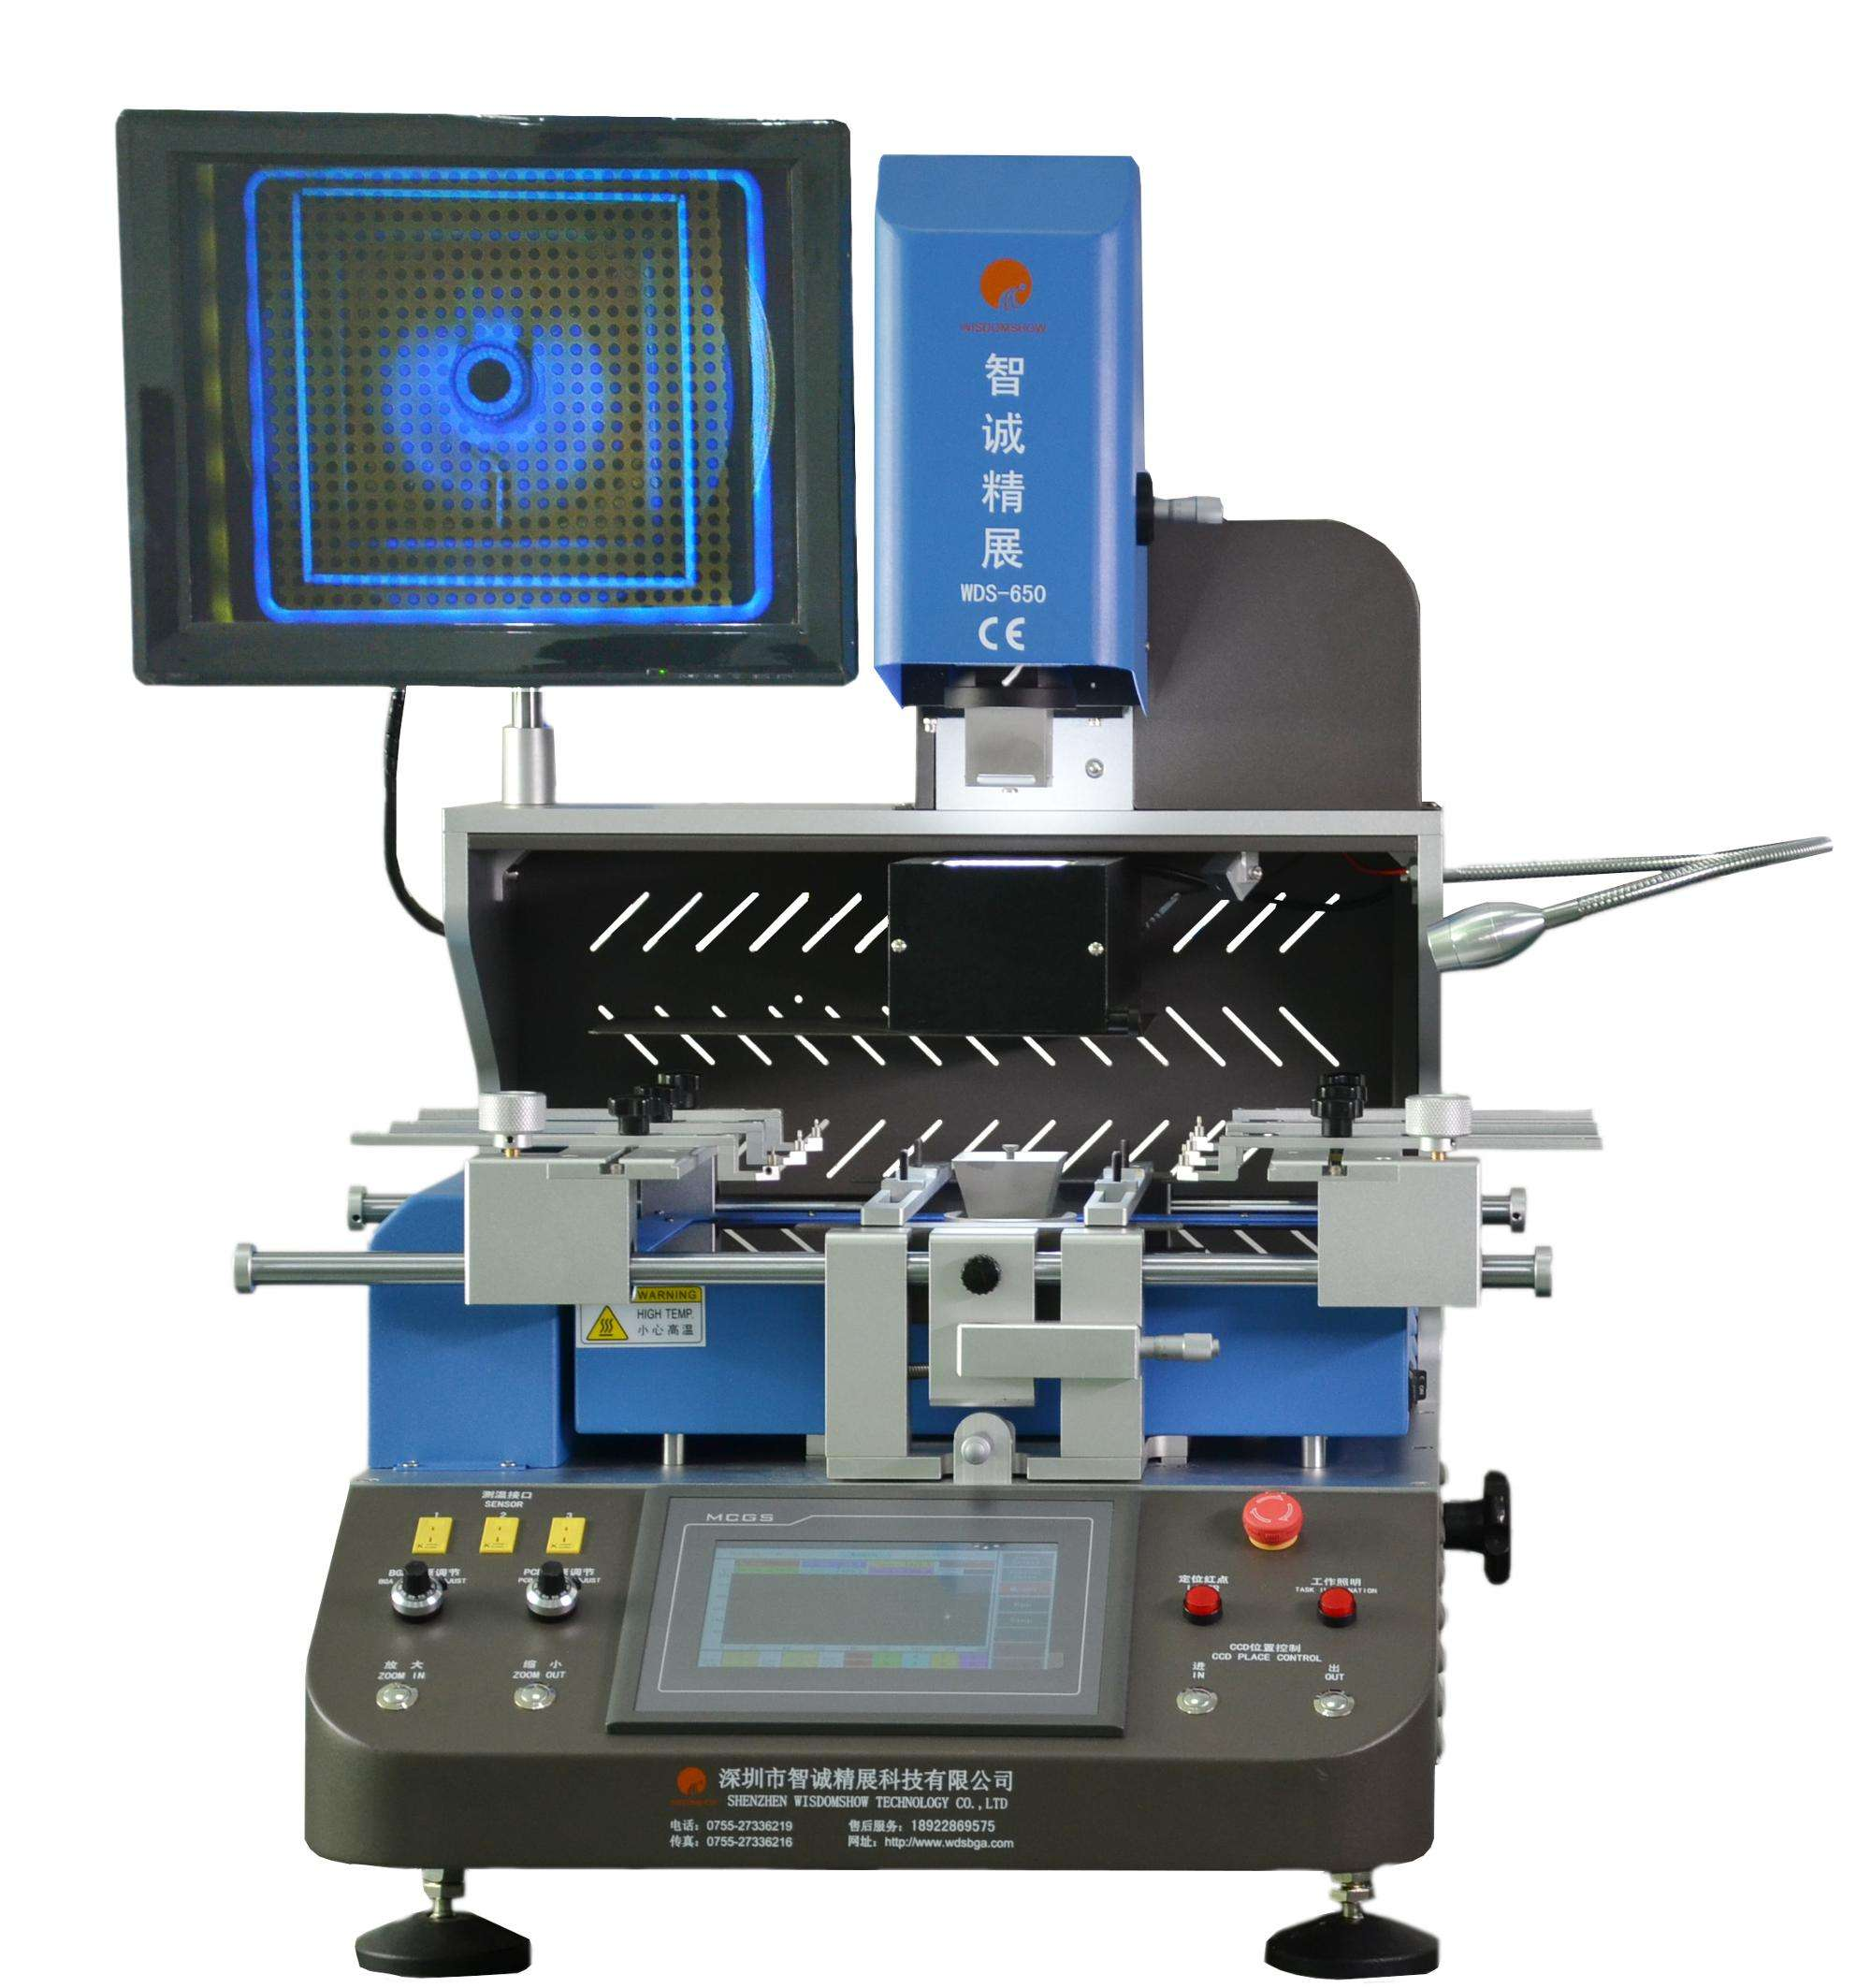 Wisdomshow latest model wds-650 mobile chip remove tool with laser position for pcb repair